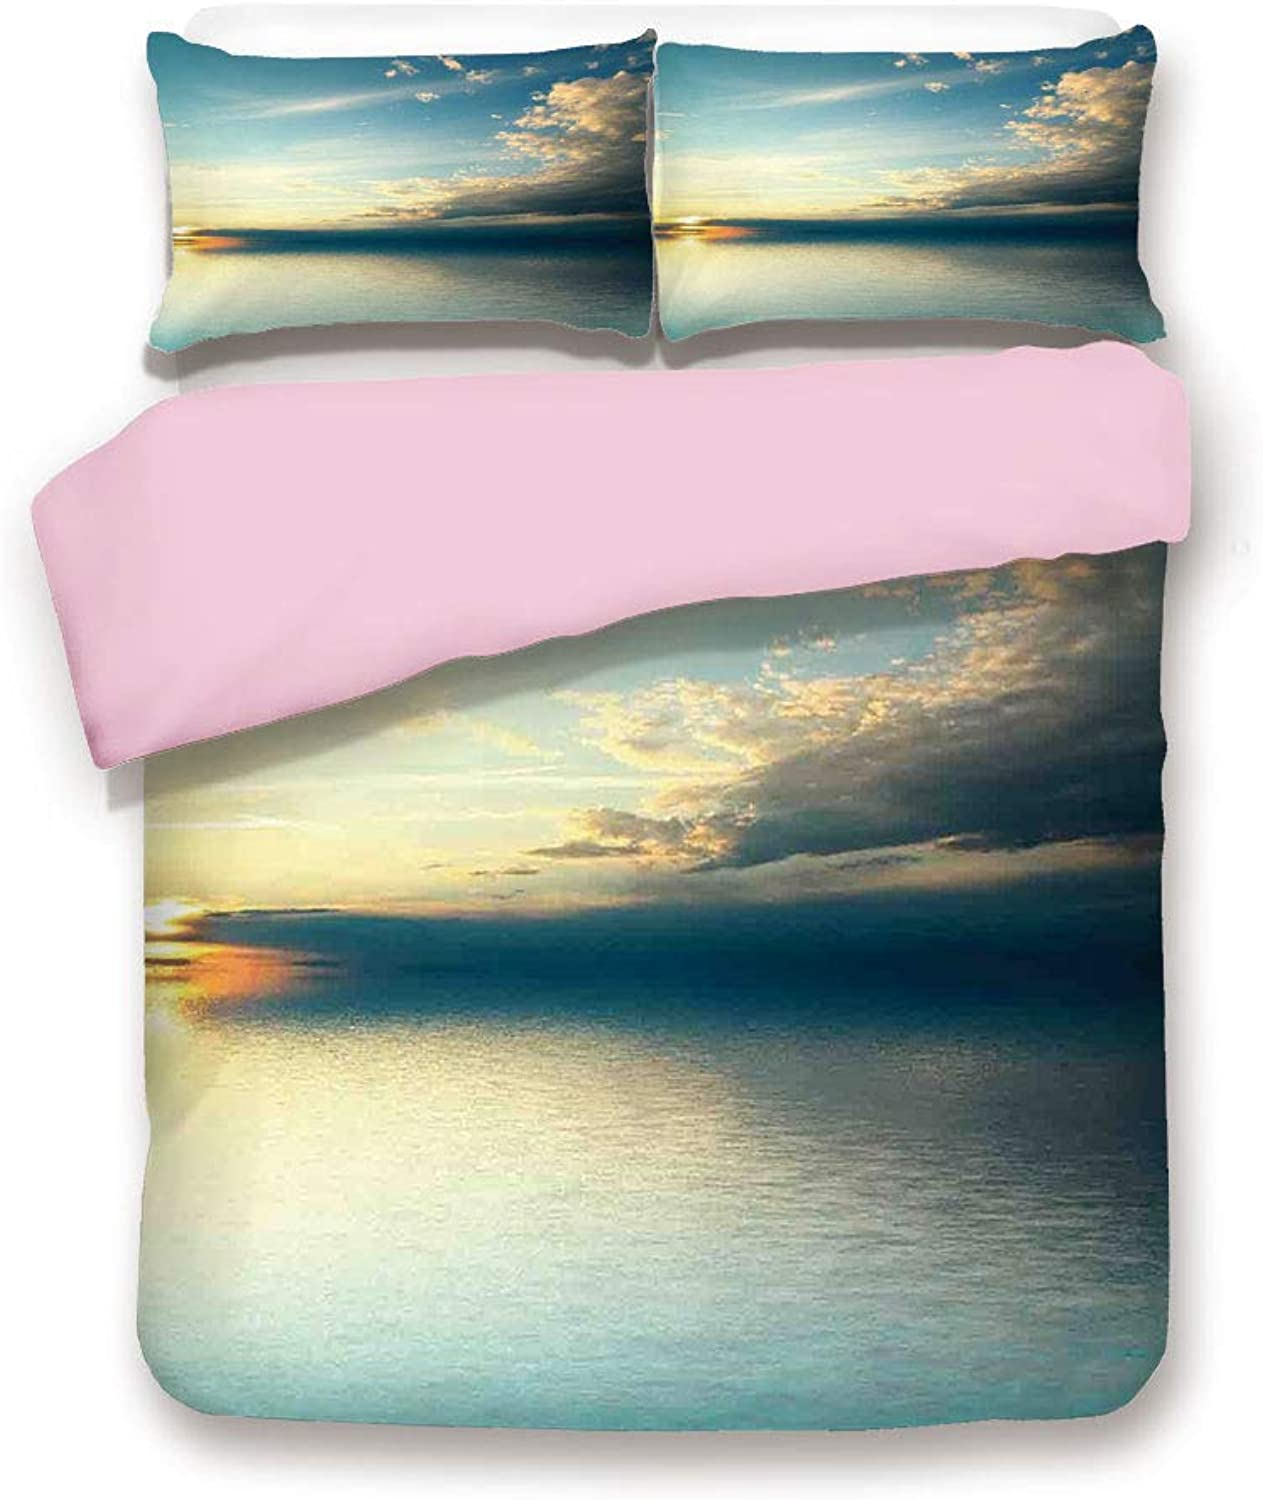 Pink Duvet Cover Set,King Size,Panorama of Sea Sunset Sundown Reflection Horizon Dark Clouds Nature Picture Print,Decorative 3 Piece Bedding Set with 2 Pillow Sham,Best Gift for Girls Women,Teal Aqua